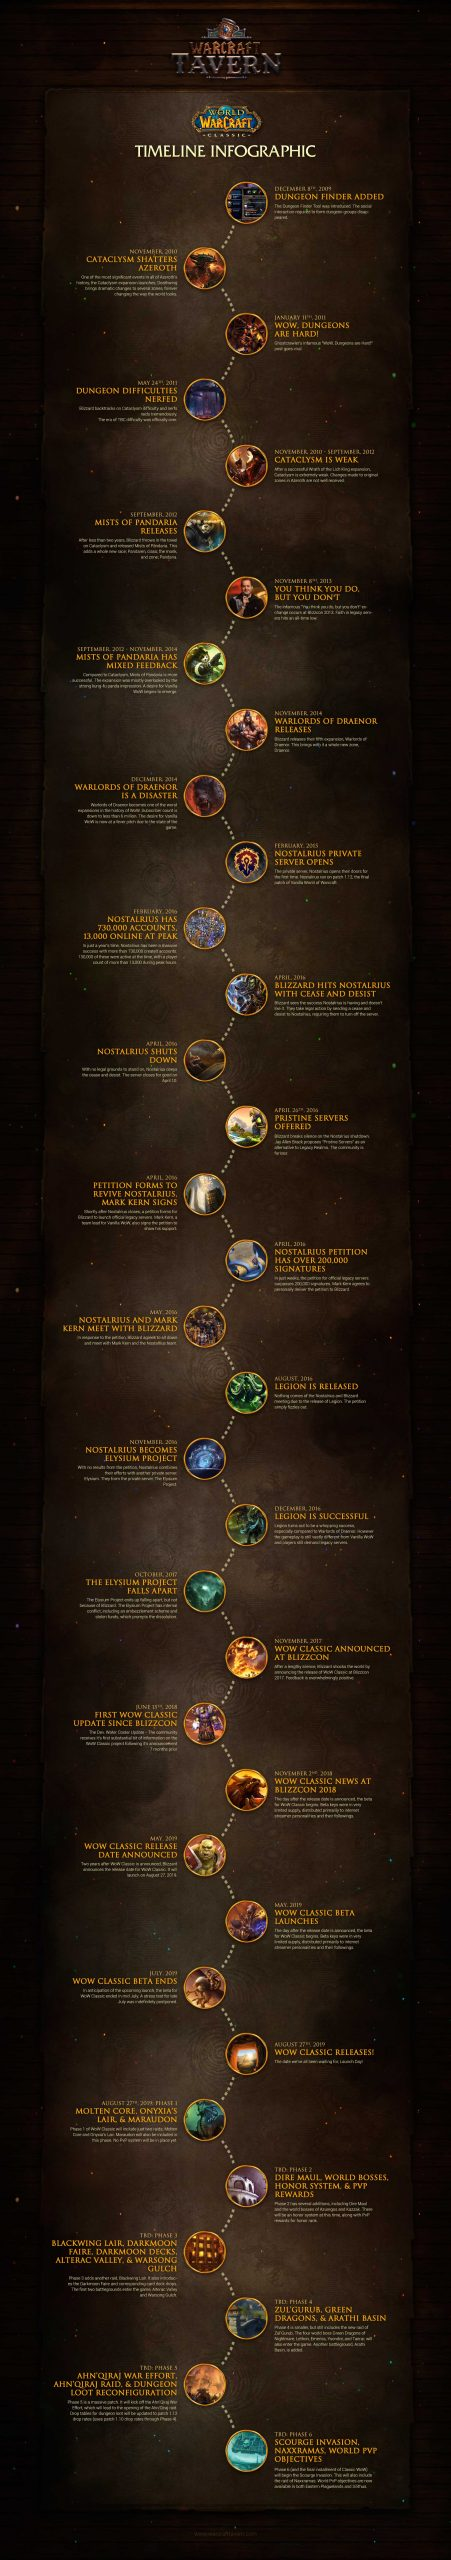 World Of Warcraft Classic Timeline Infographic